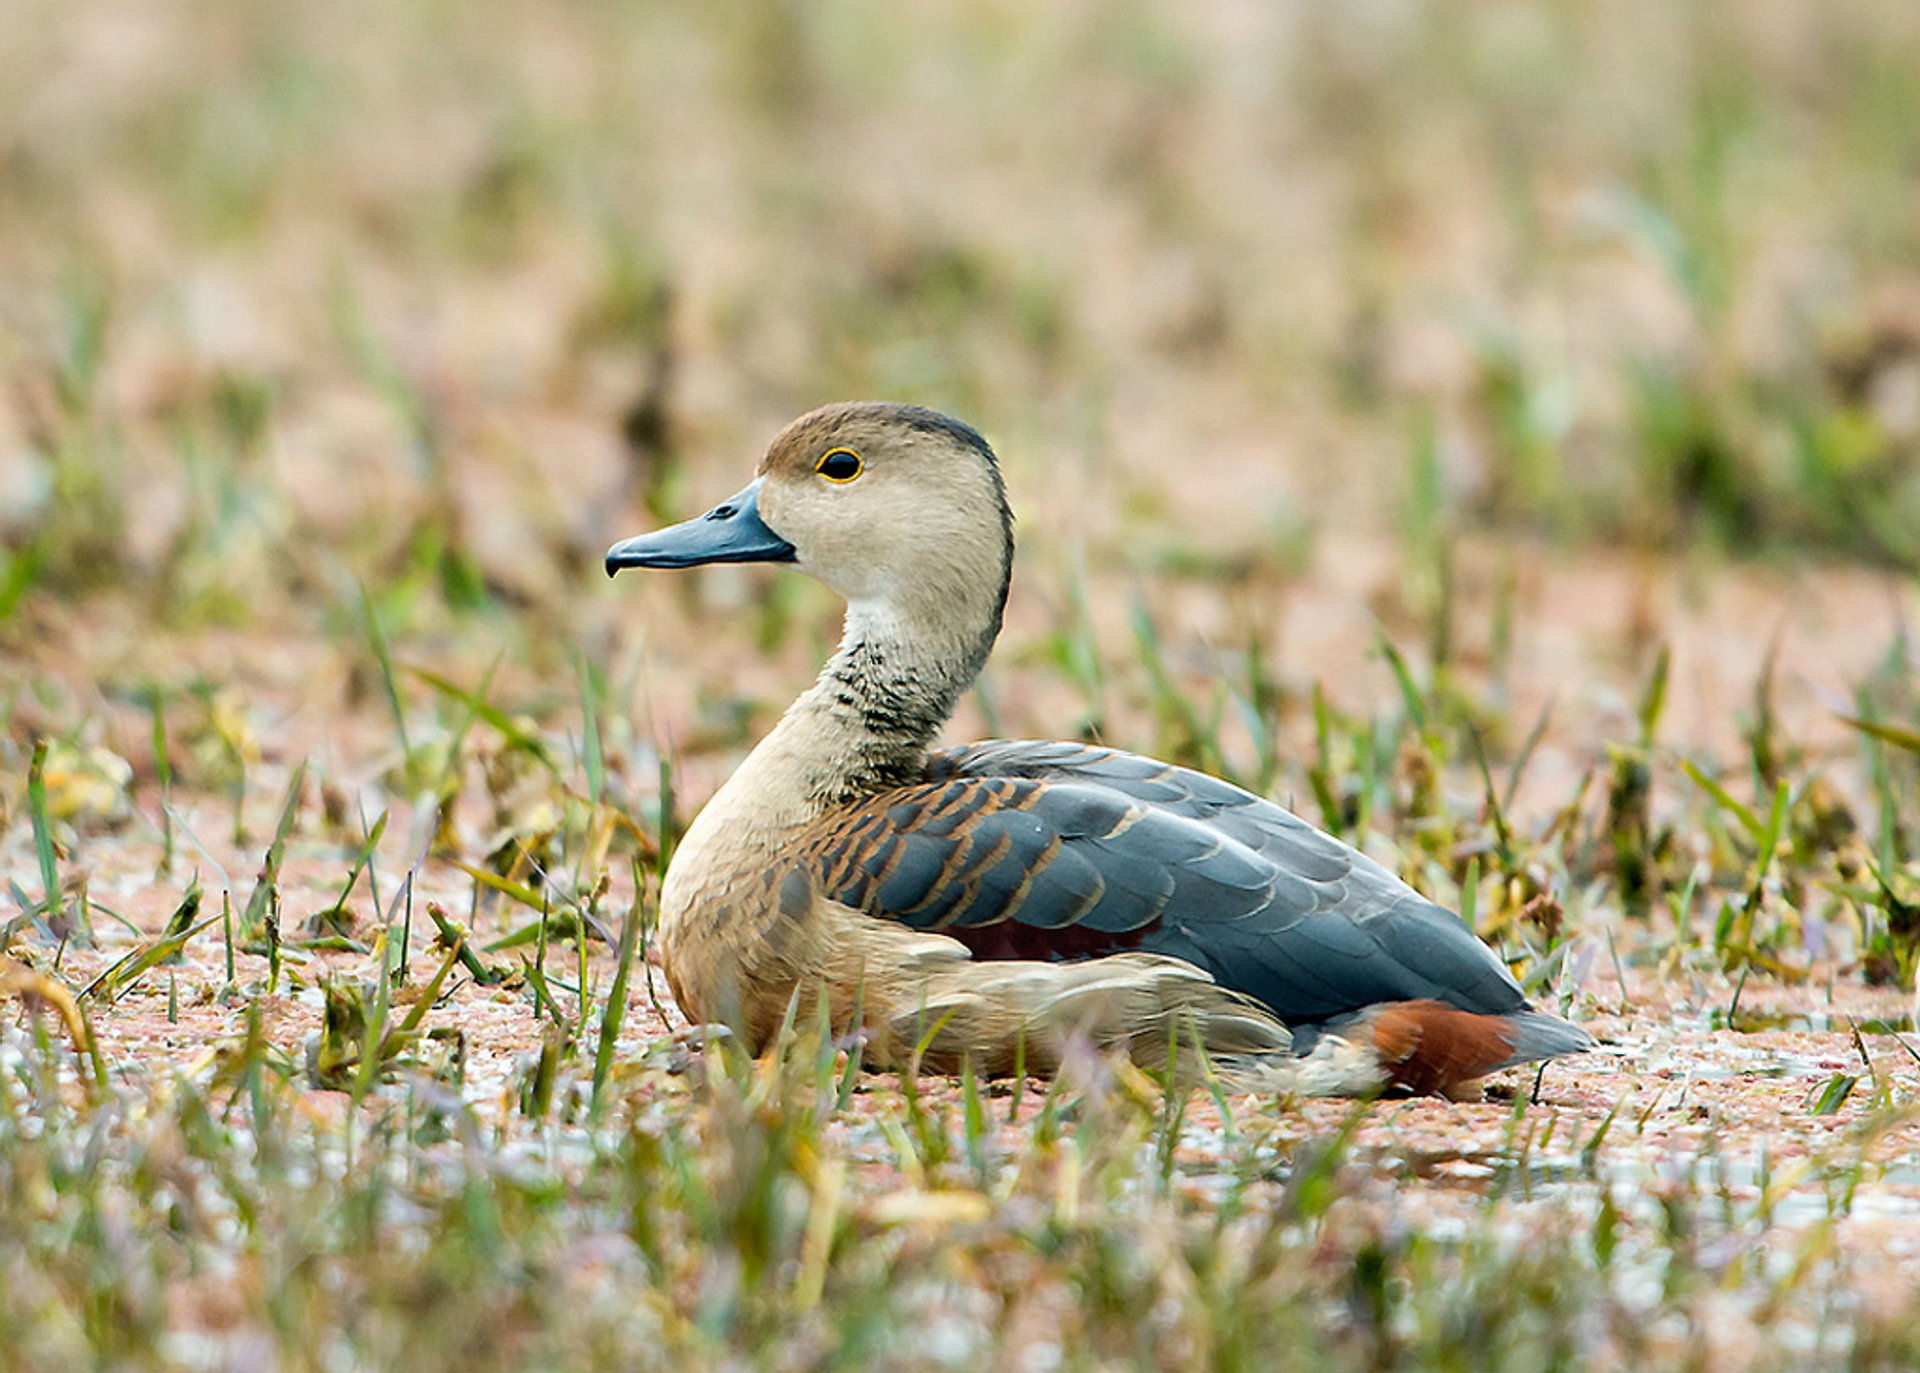 Lesser Whistling Duck in Keoladeo National Park 2020